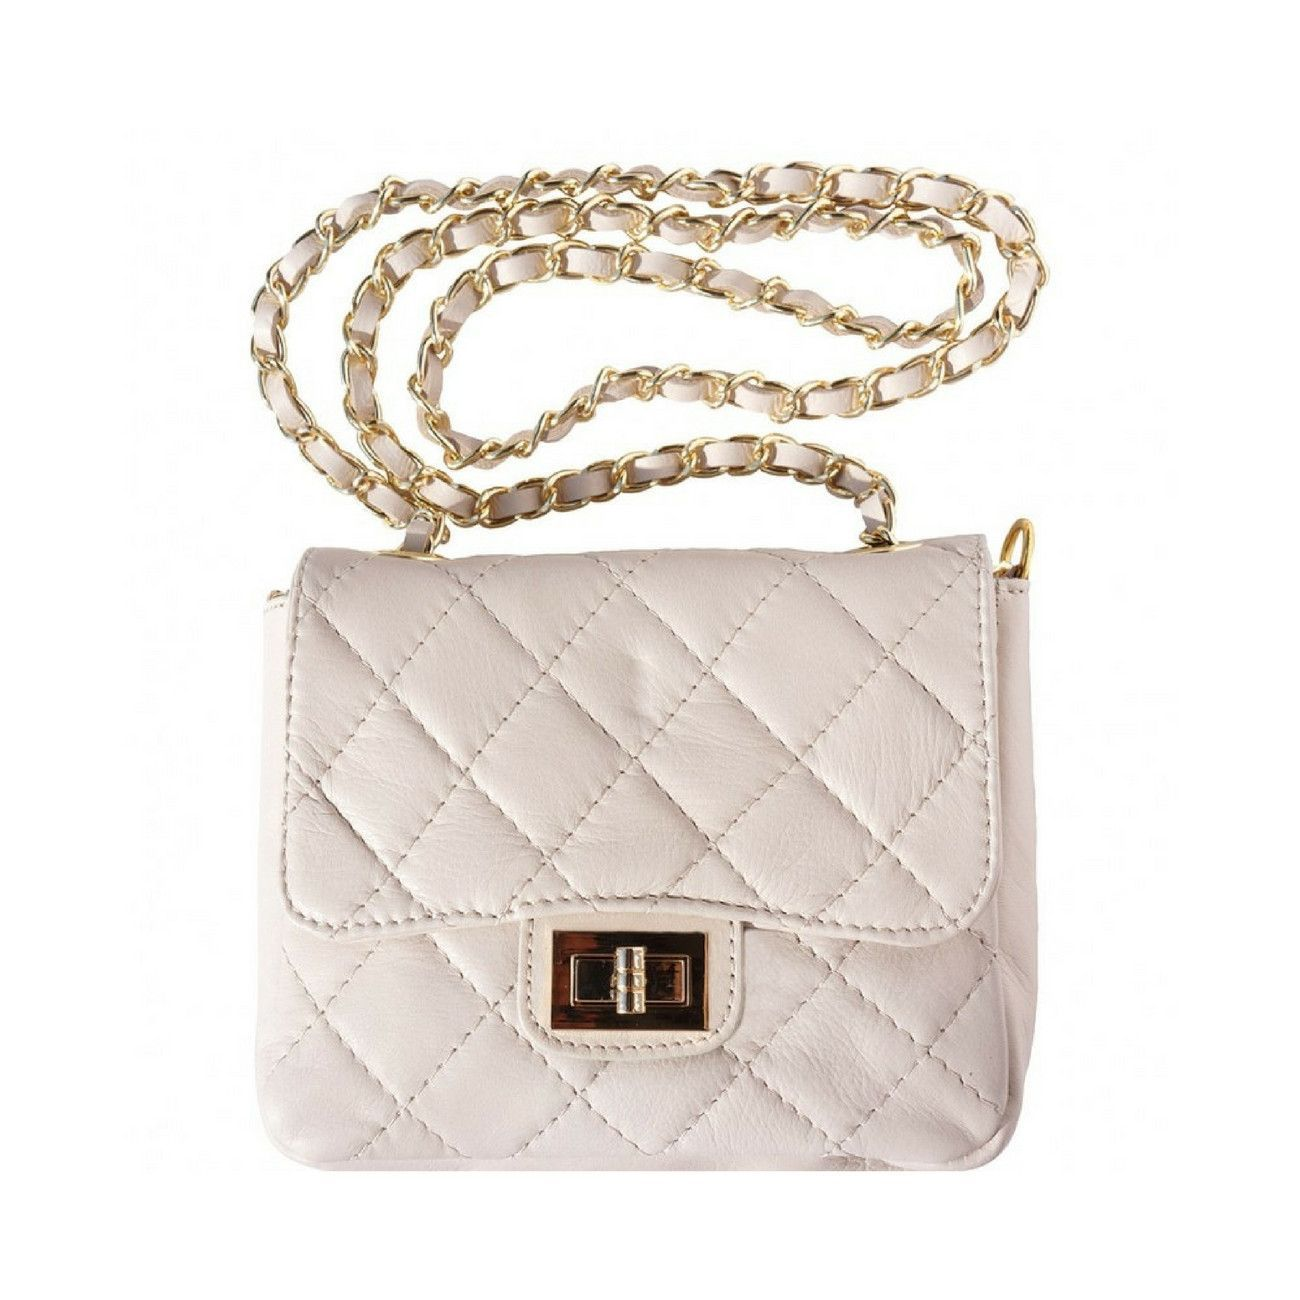 Italian Quilted Leather Single Chain Handle Shoulder Bag, Beige